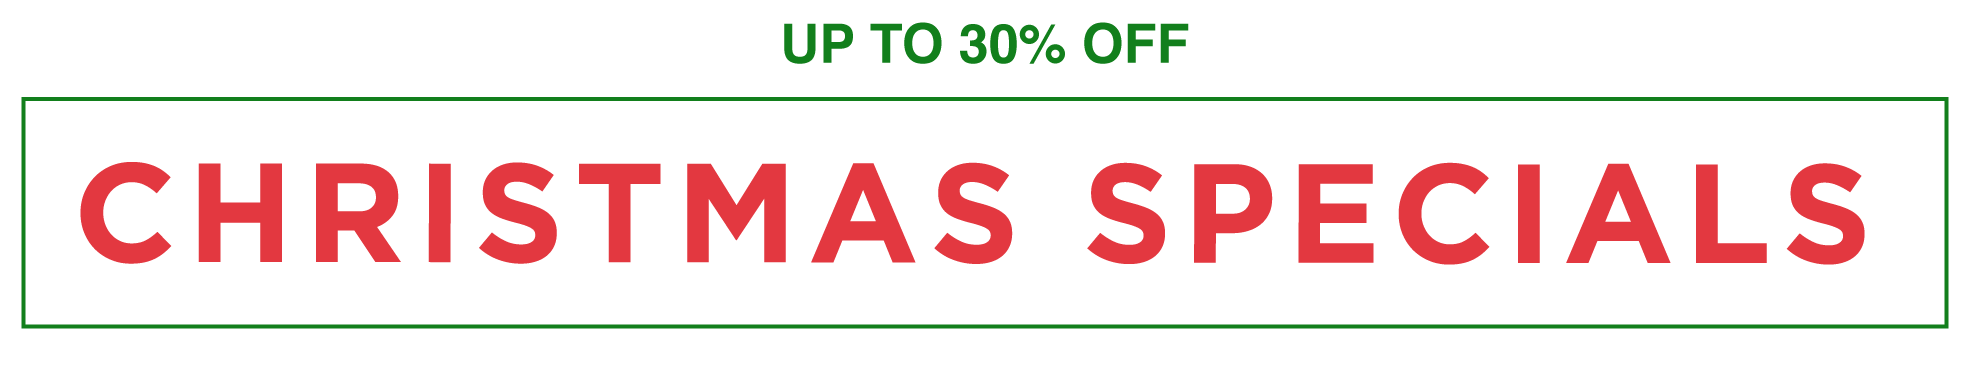 Up to 30% OFF CHRISTMAS SPECIALS